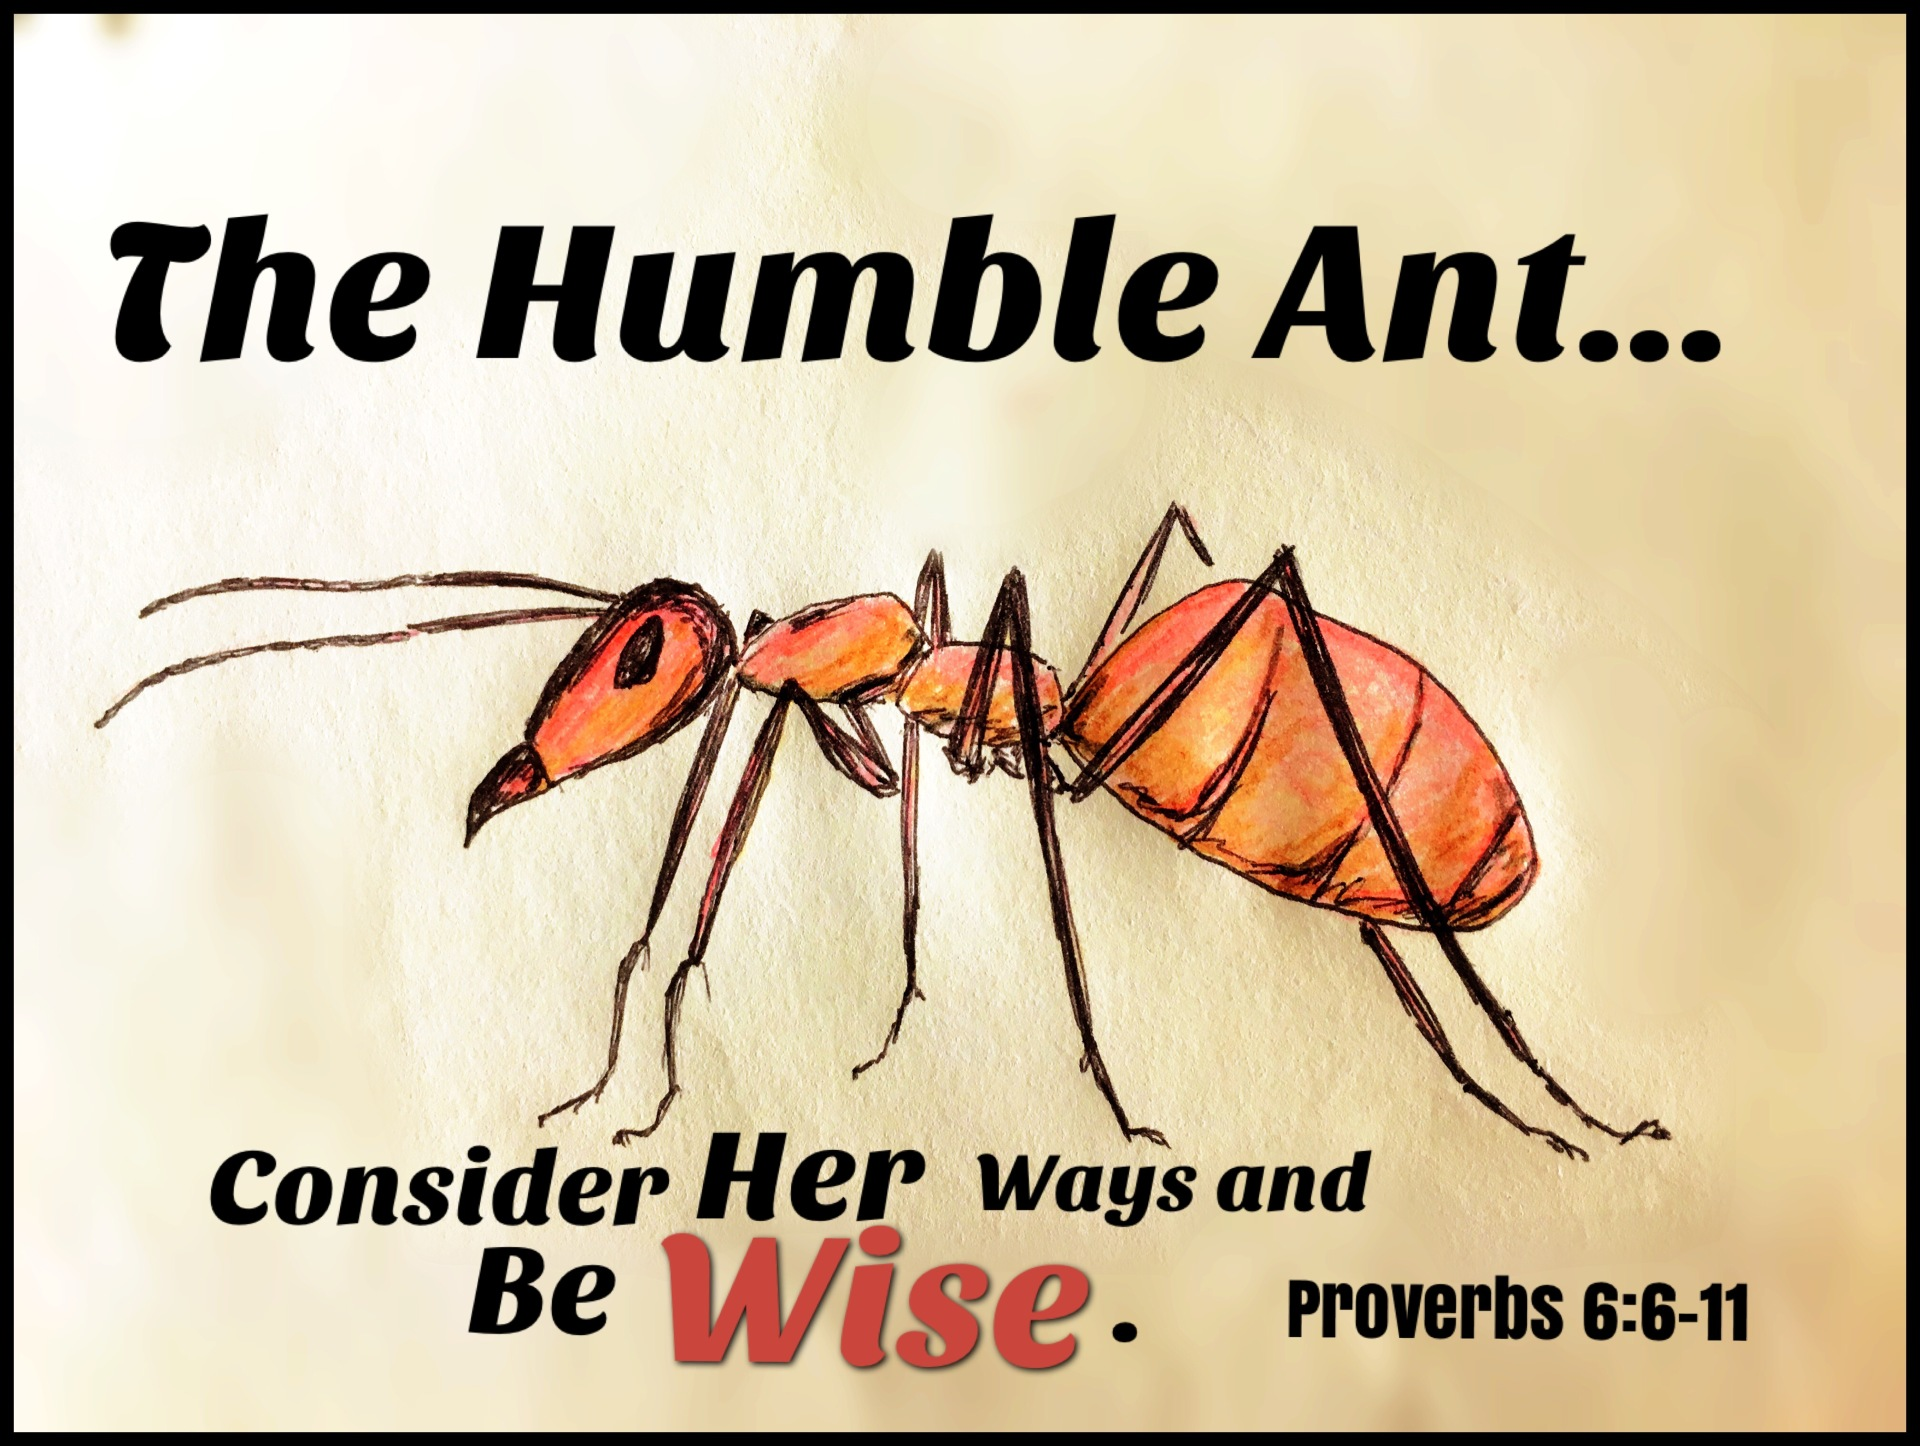 The Humble Ant: a Family Devotional!